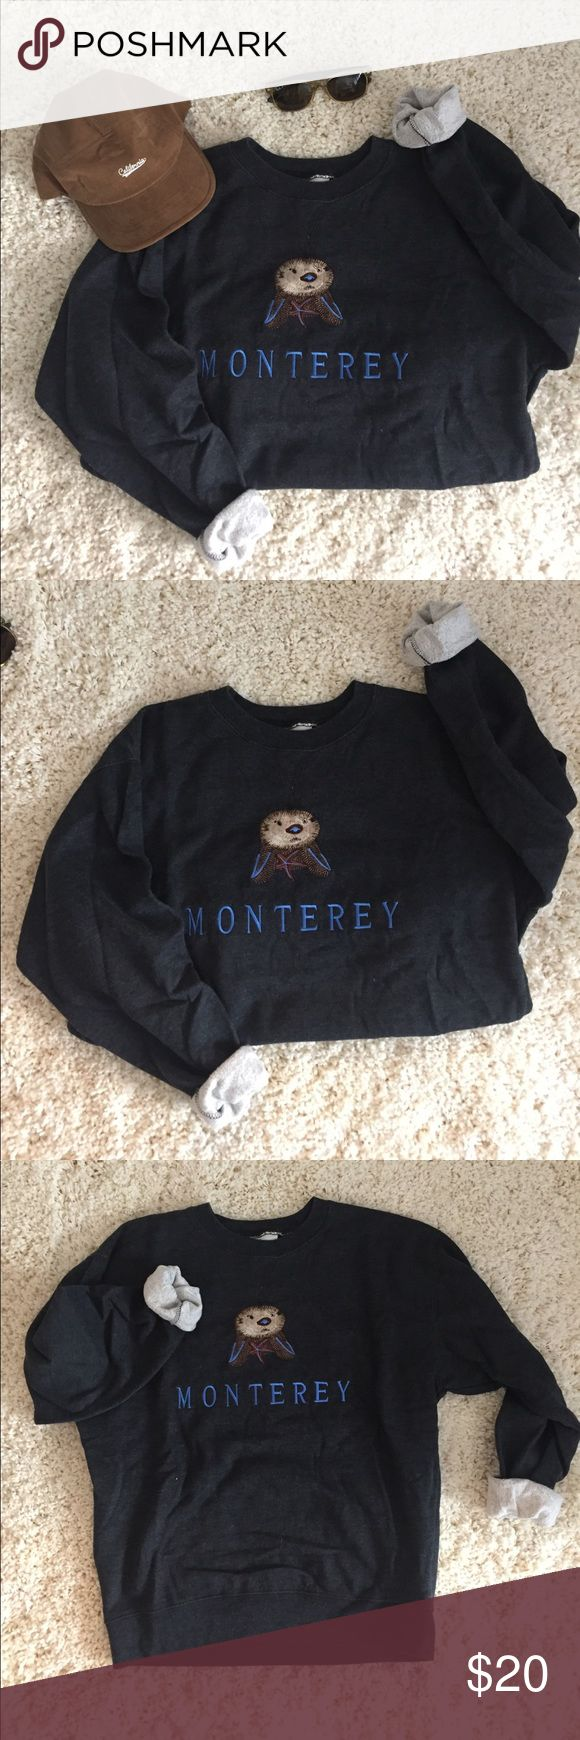 Monterey Bay Aquarium • gray otter crew neck Monterey Bay Aquarium • gray otter crew neck. Unisex size small. I bought this at the actual Monterey Bay Aquarium here in California. Barely worn. Baggy fit for girls, but still very cute! San Francisco Fleecewear Co. Sweaters Crew & Scoop Necks